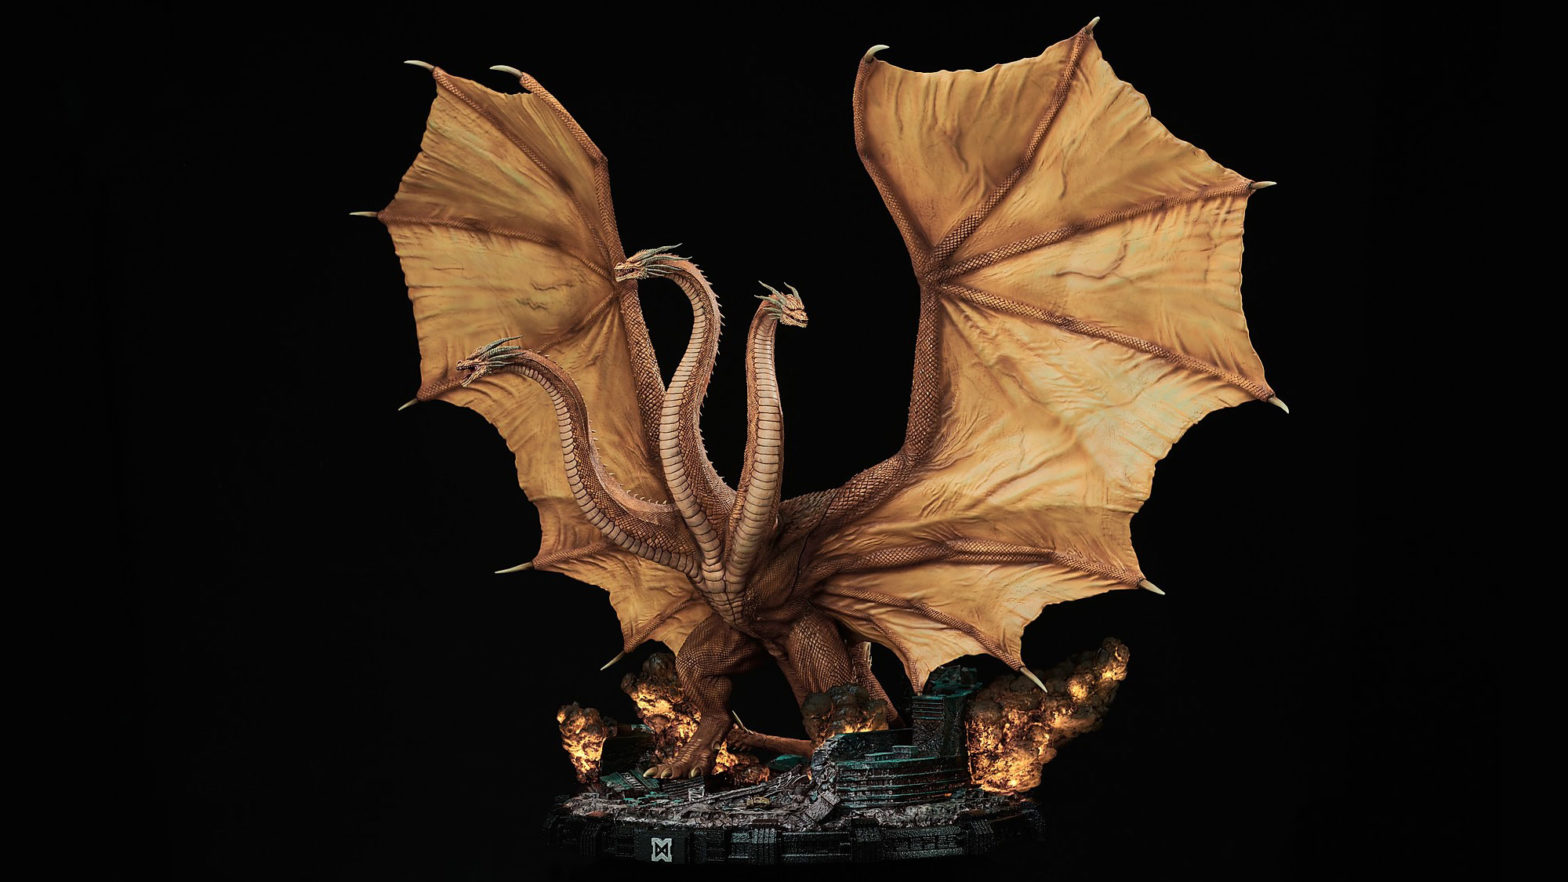 Godzilla King of the Monsters King Ghidorah Statue by Spiral Studio